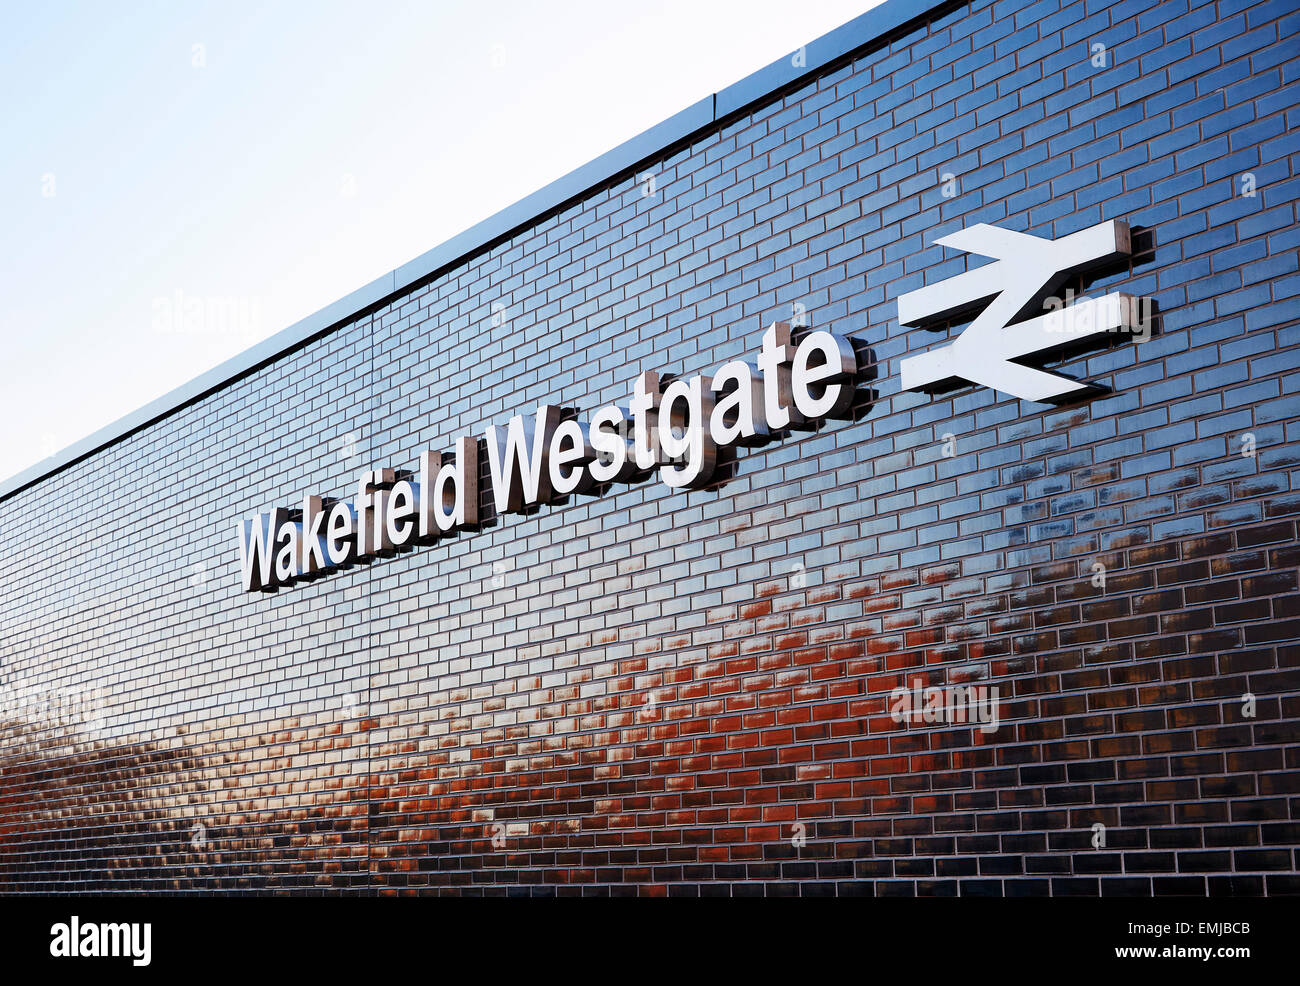 Large sign on exterior wall of Wakefield Westgate railway station. Copy space for text - Stock Image